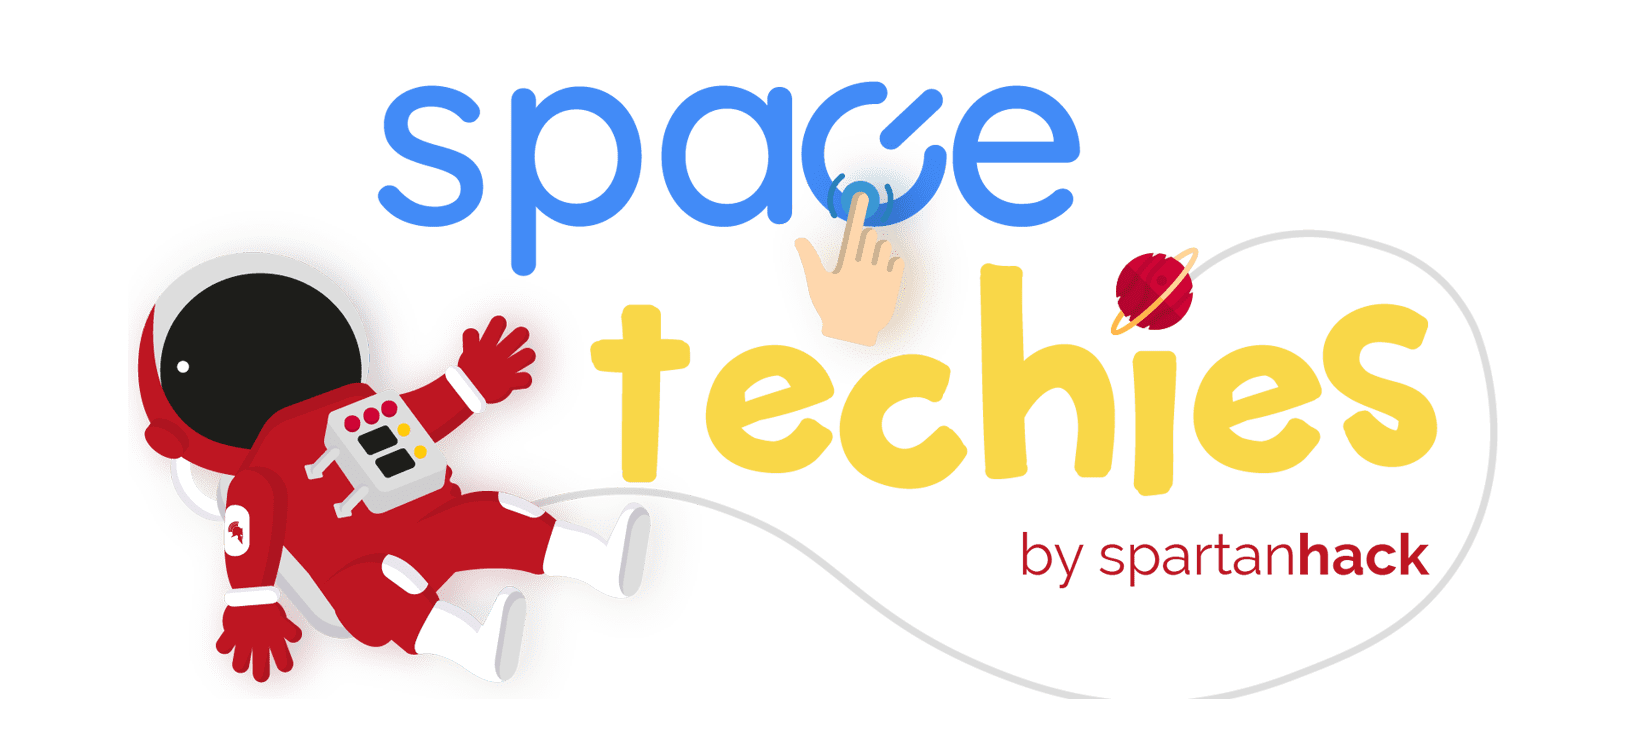 Spacetechies